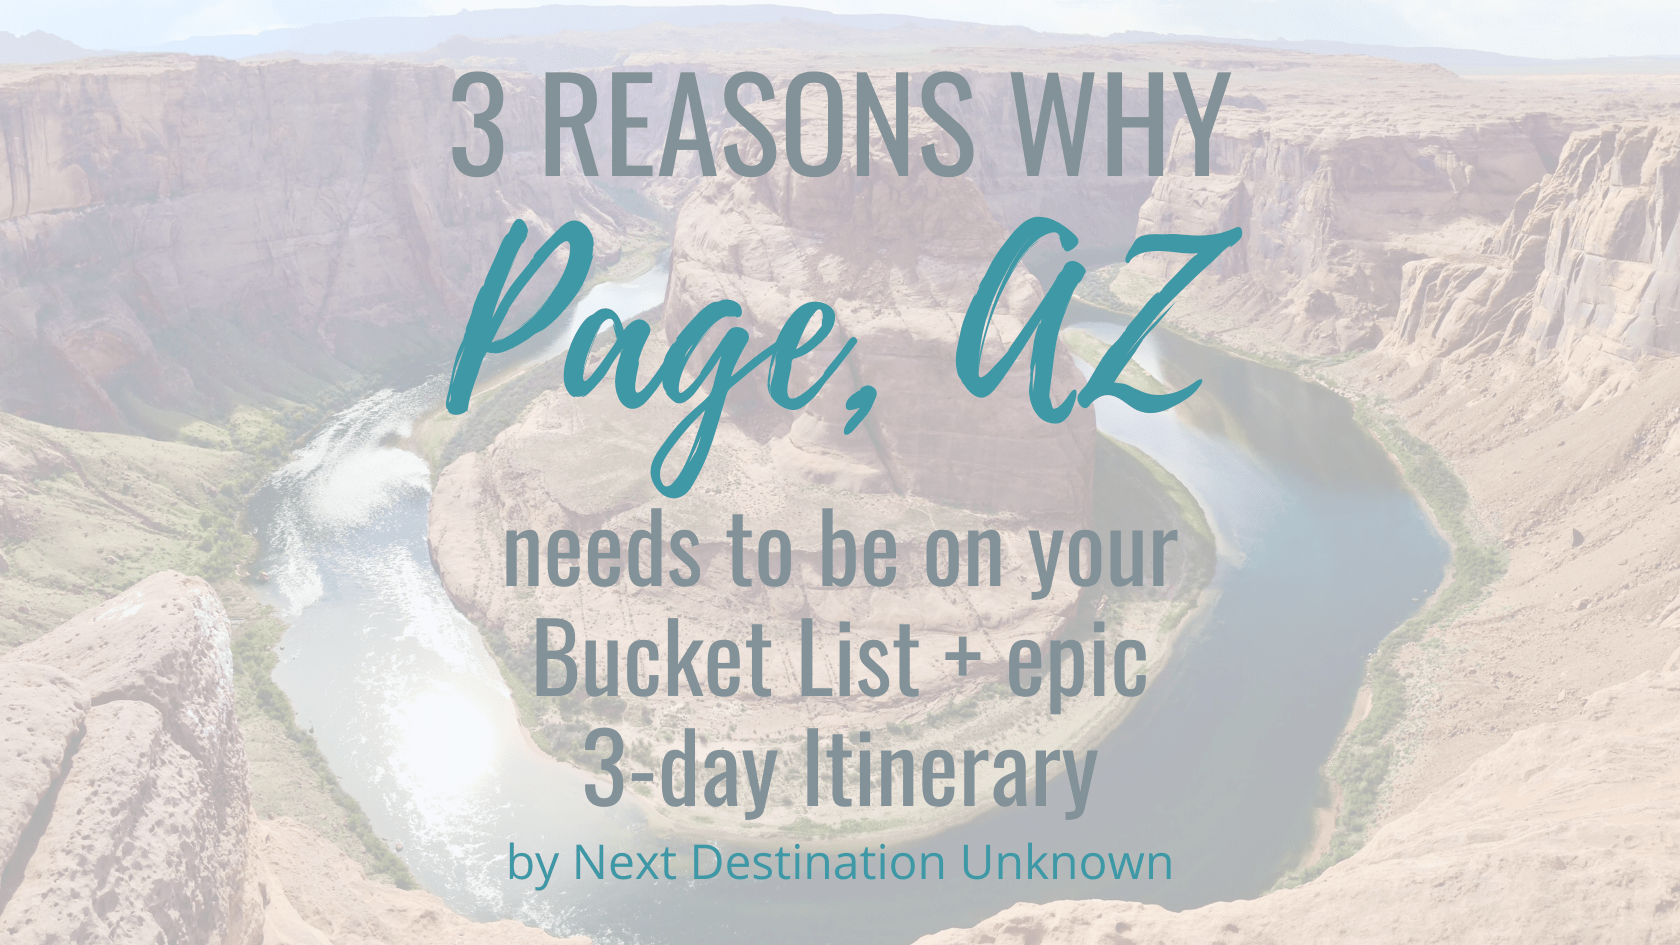 3 Reasons Why Page AZ Needs to Be on Your Bucket List + Epic 3-Day Page AZ Itinerary